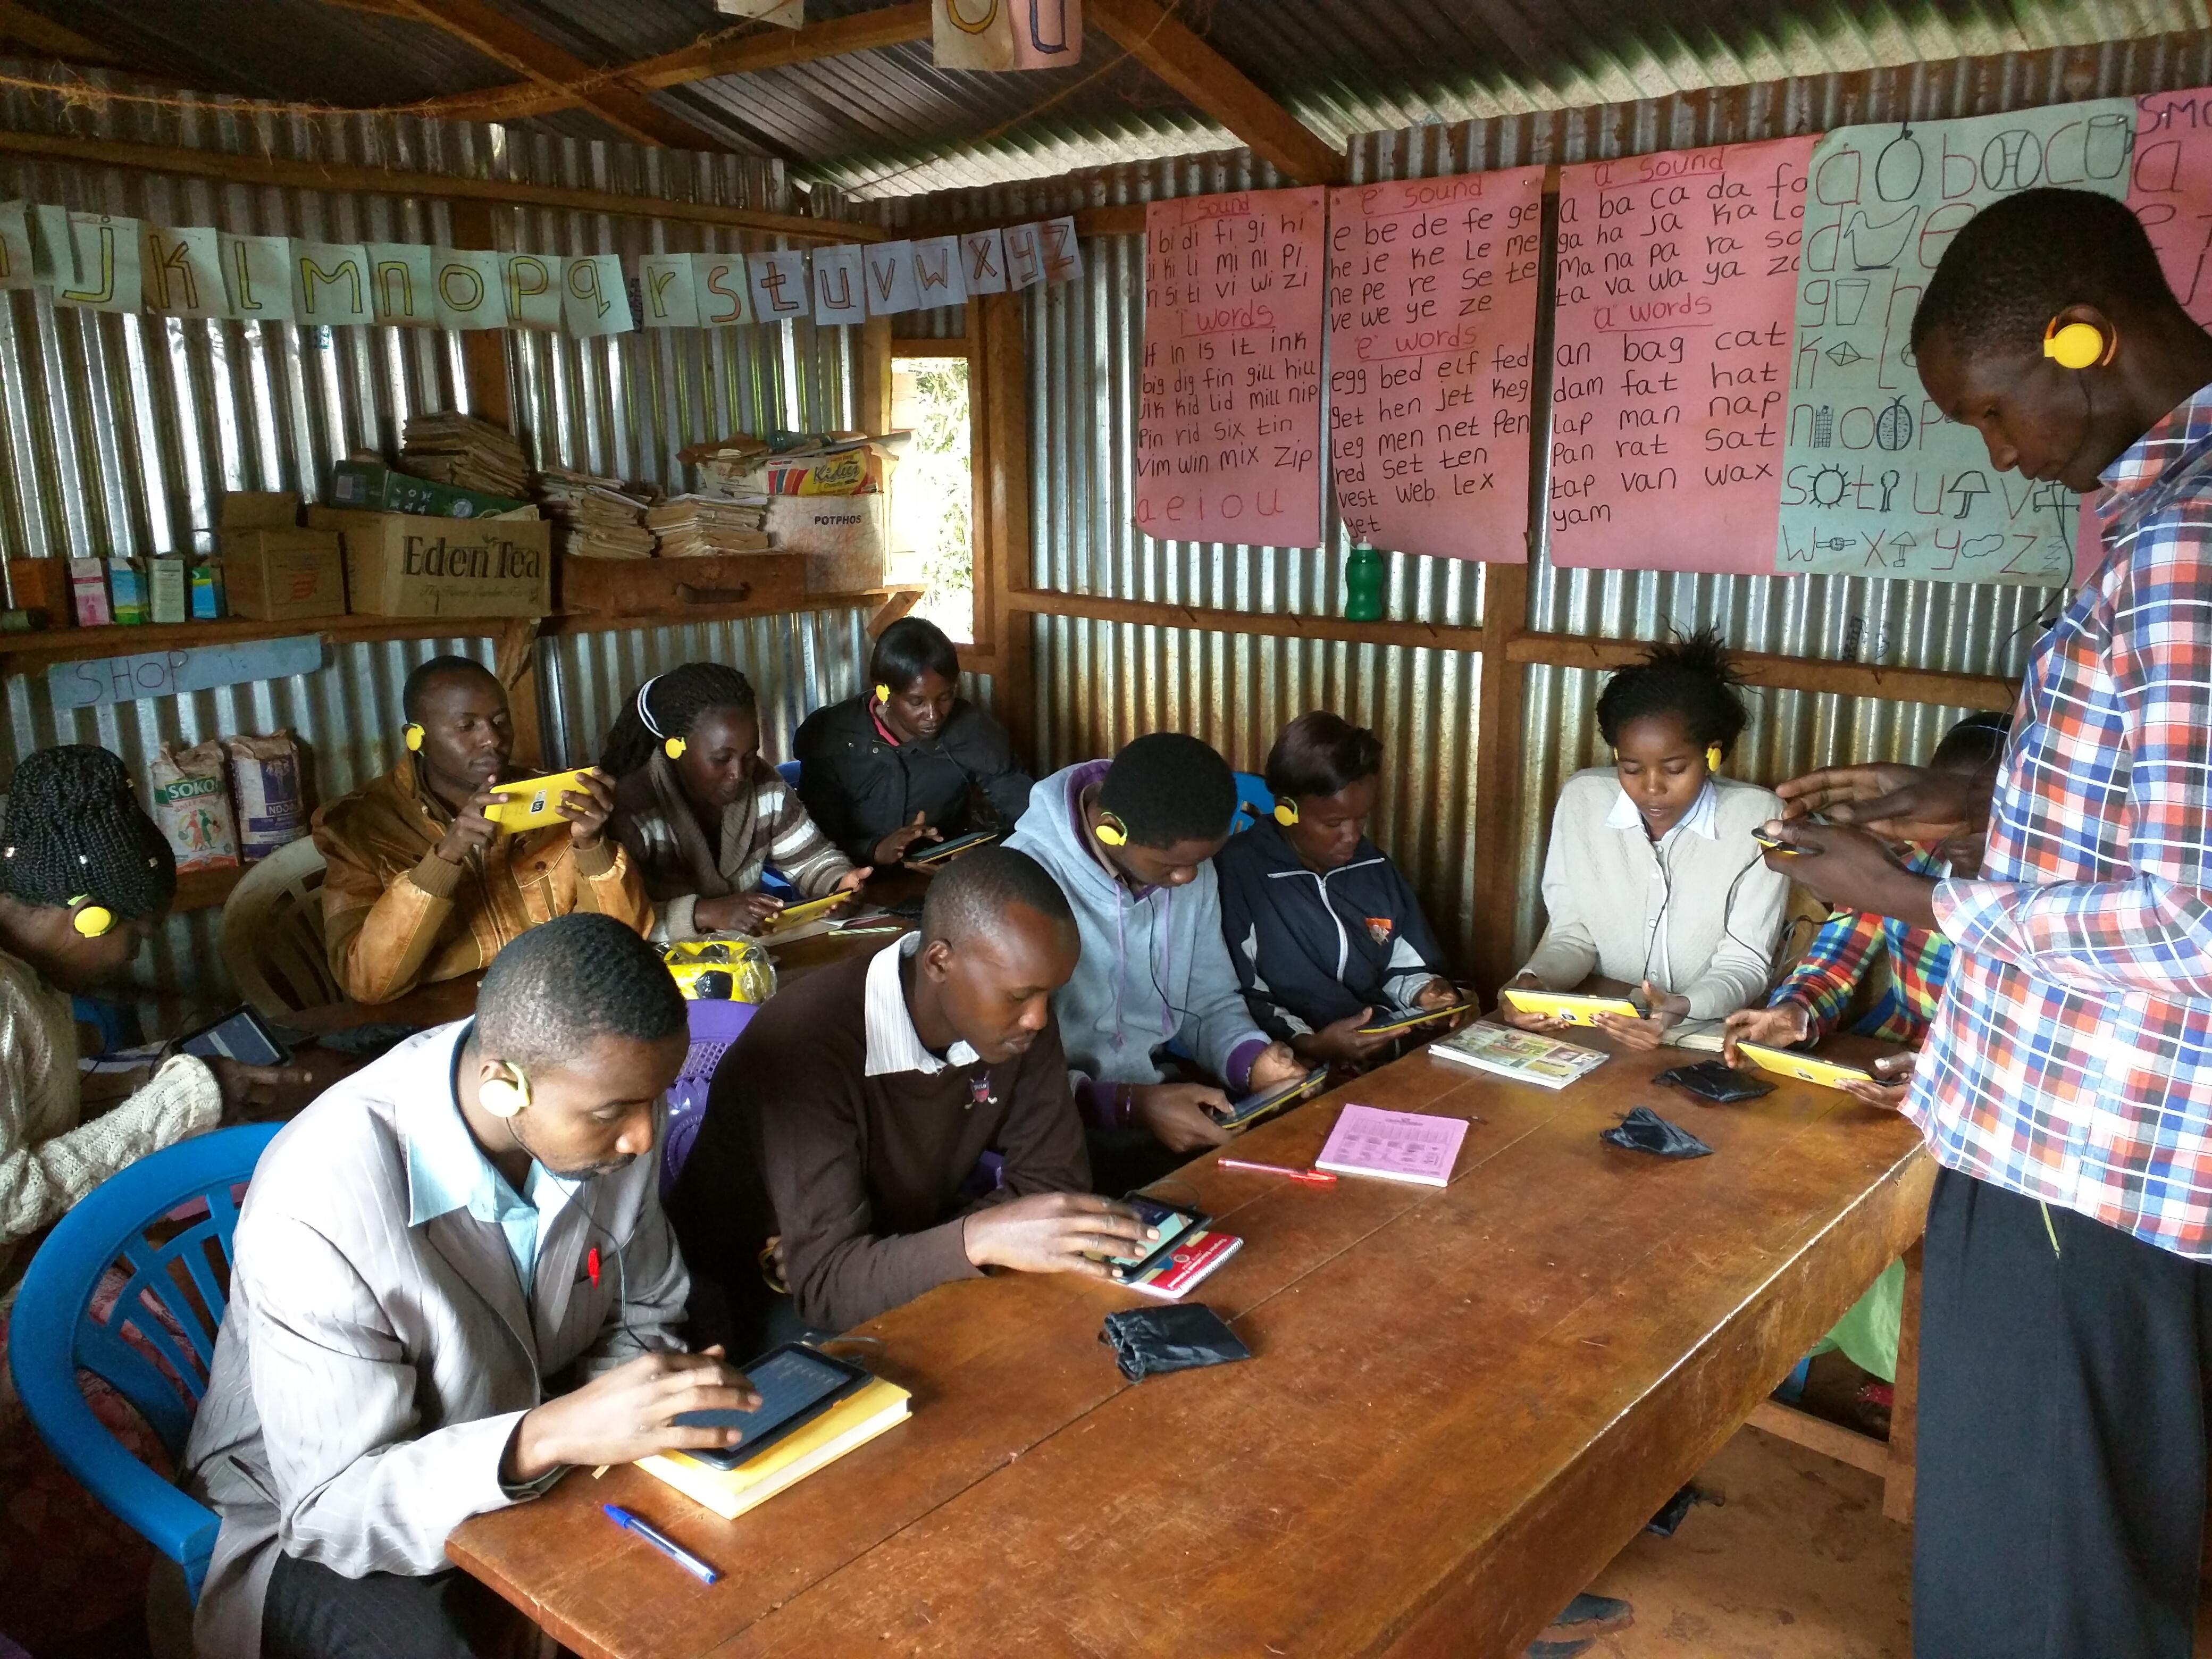 One of the Swahili teachers heading a lesson.